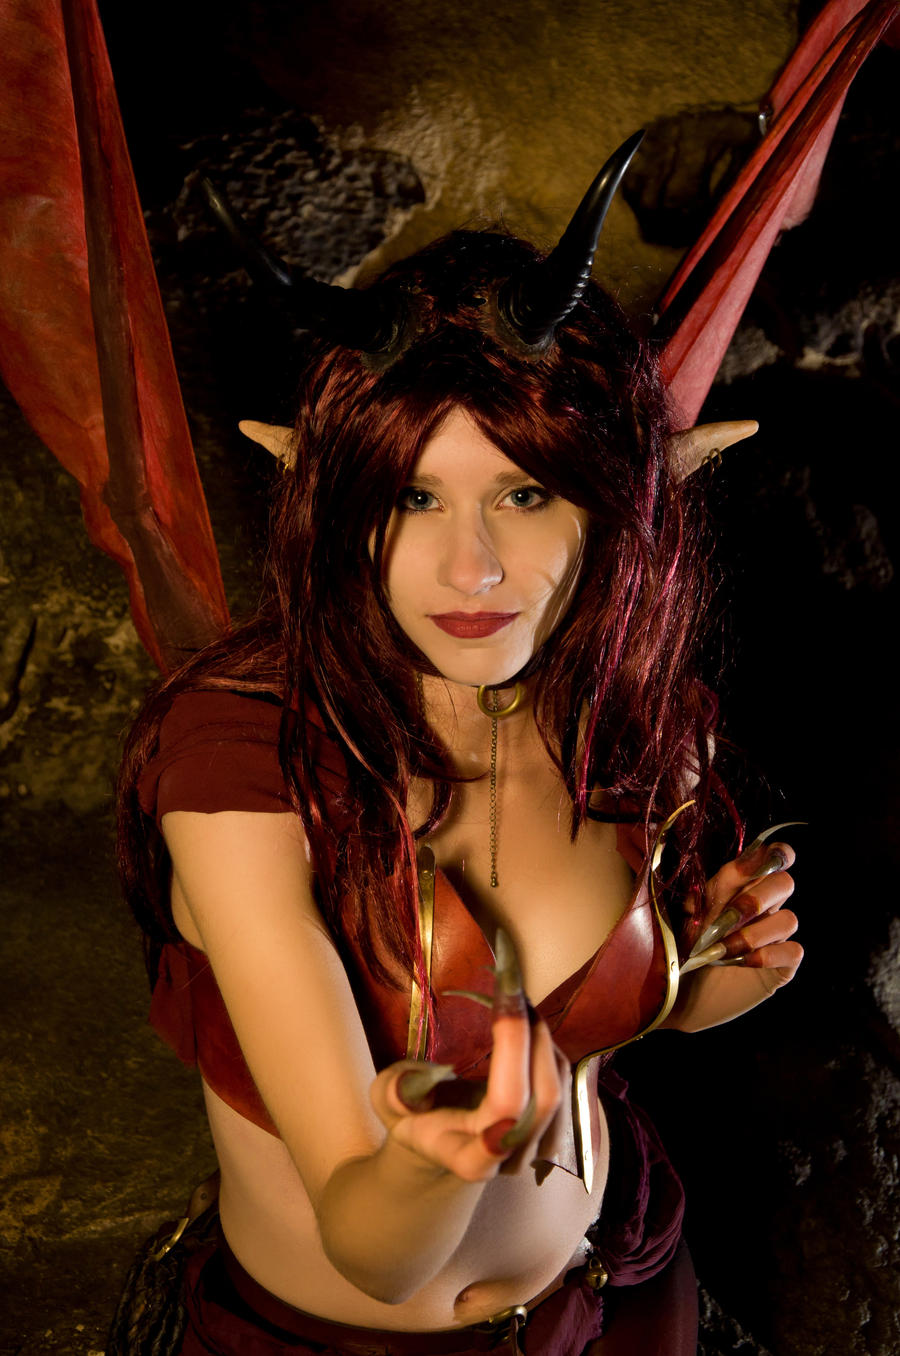 Succubus and elf adult image